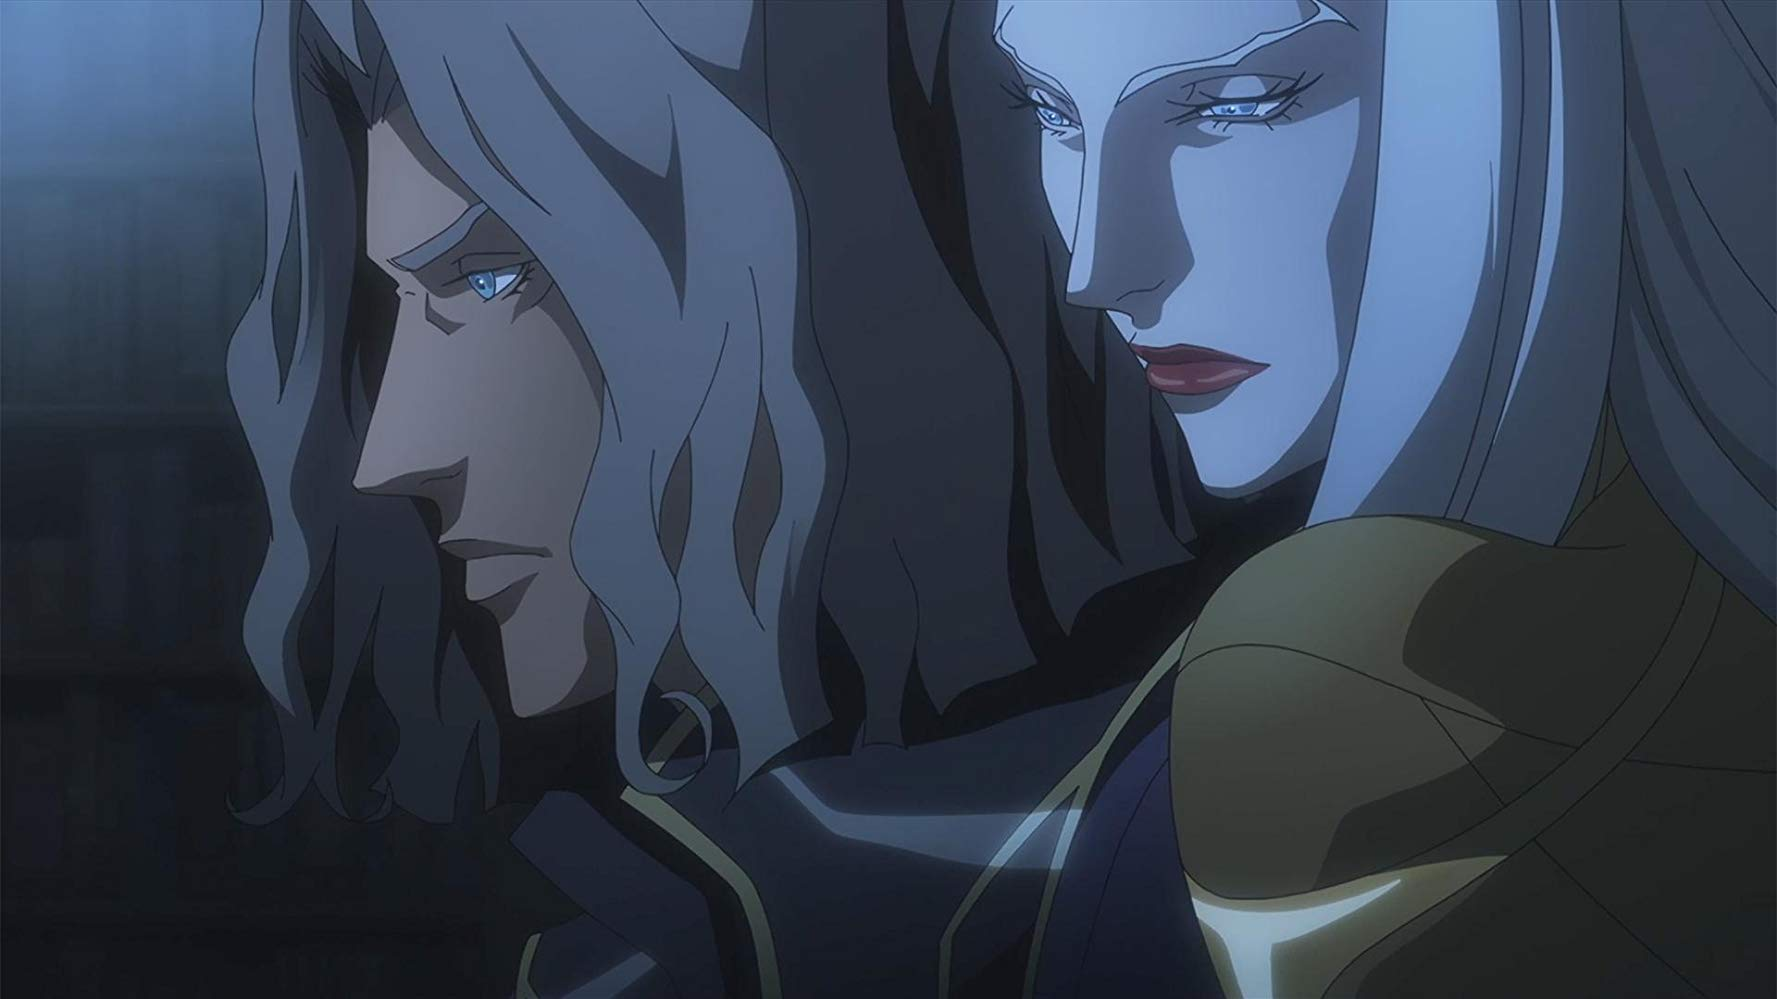 'Castlevania' is a Gothic Thirst Trap and female power ballad all in one | Hypable